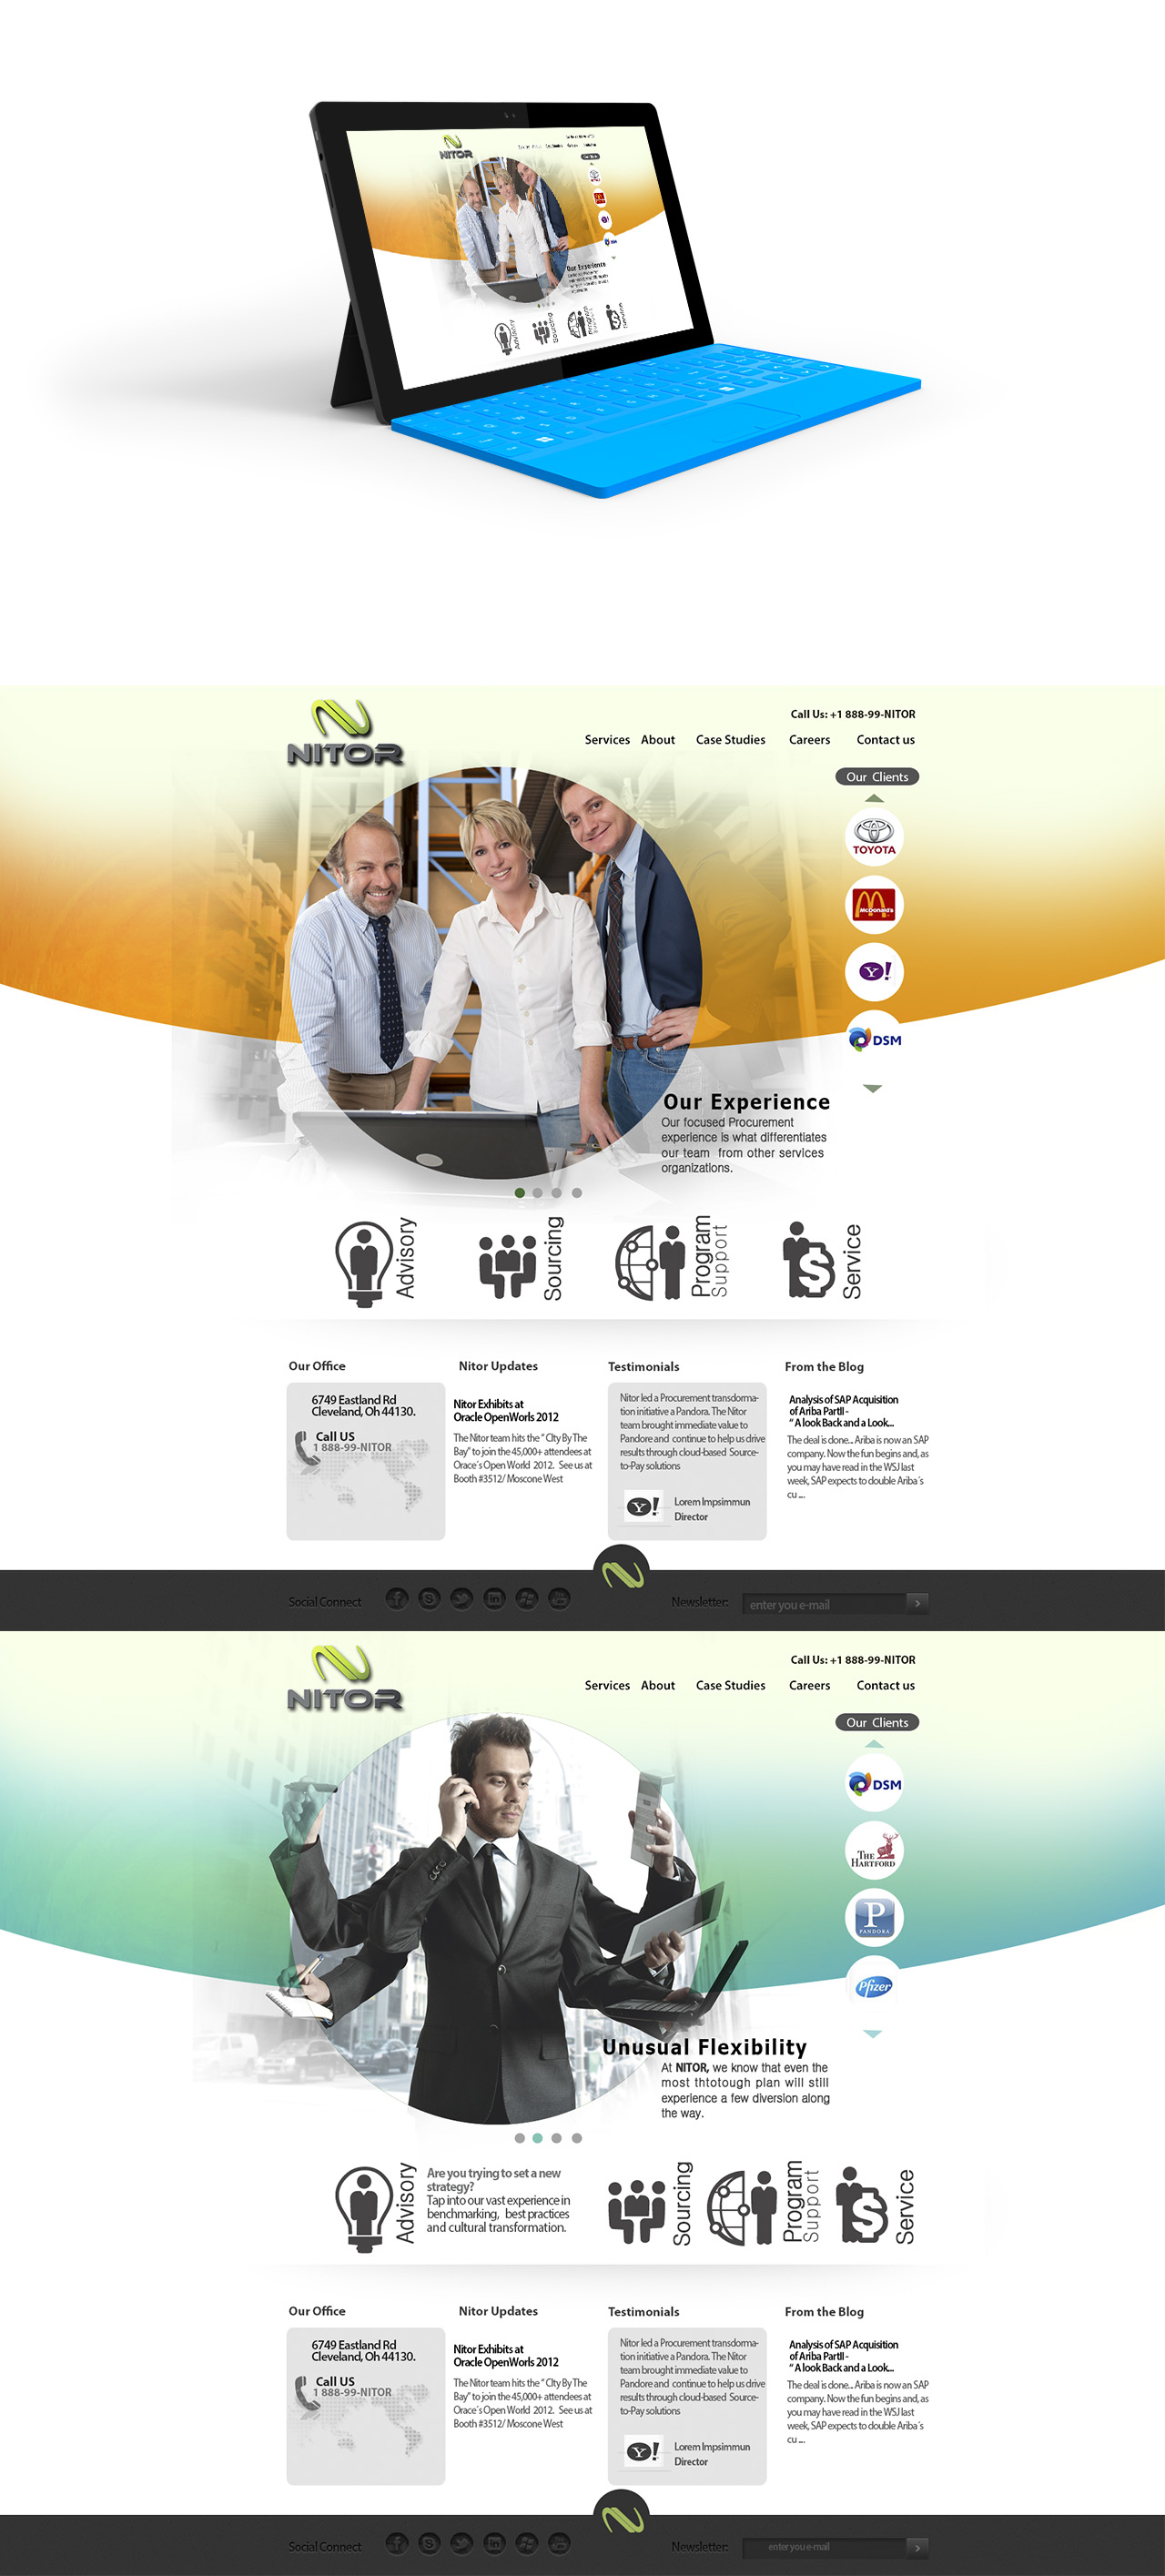 Web Page Design by Oliver WangHo - Entry No. 16 in the Web Page Design Contest Nitor Partners Web Page Design.